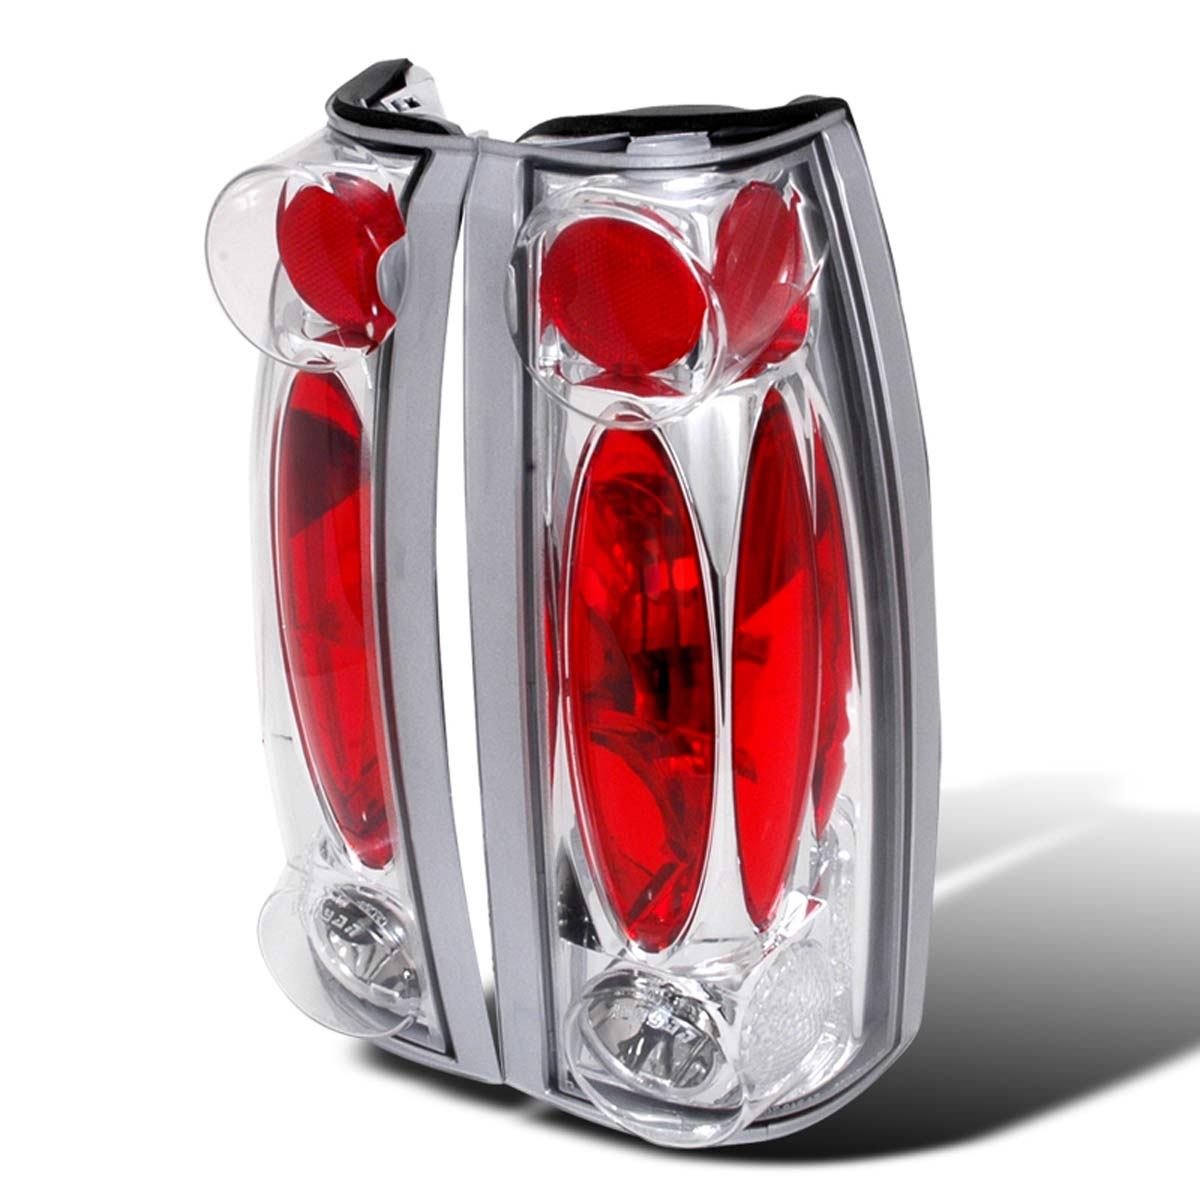 88 98 Gmc Chevy Pickup Tail Lights Ver Ome Truck Led